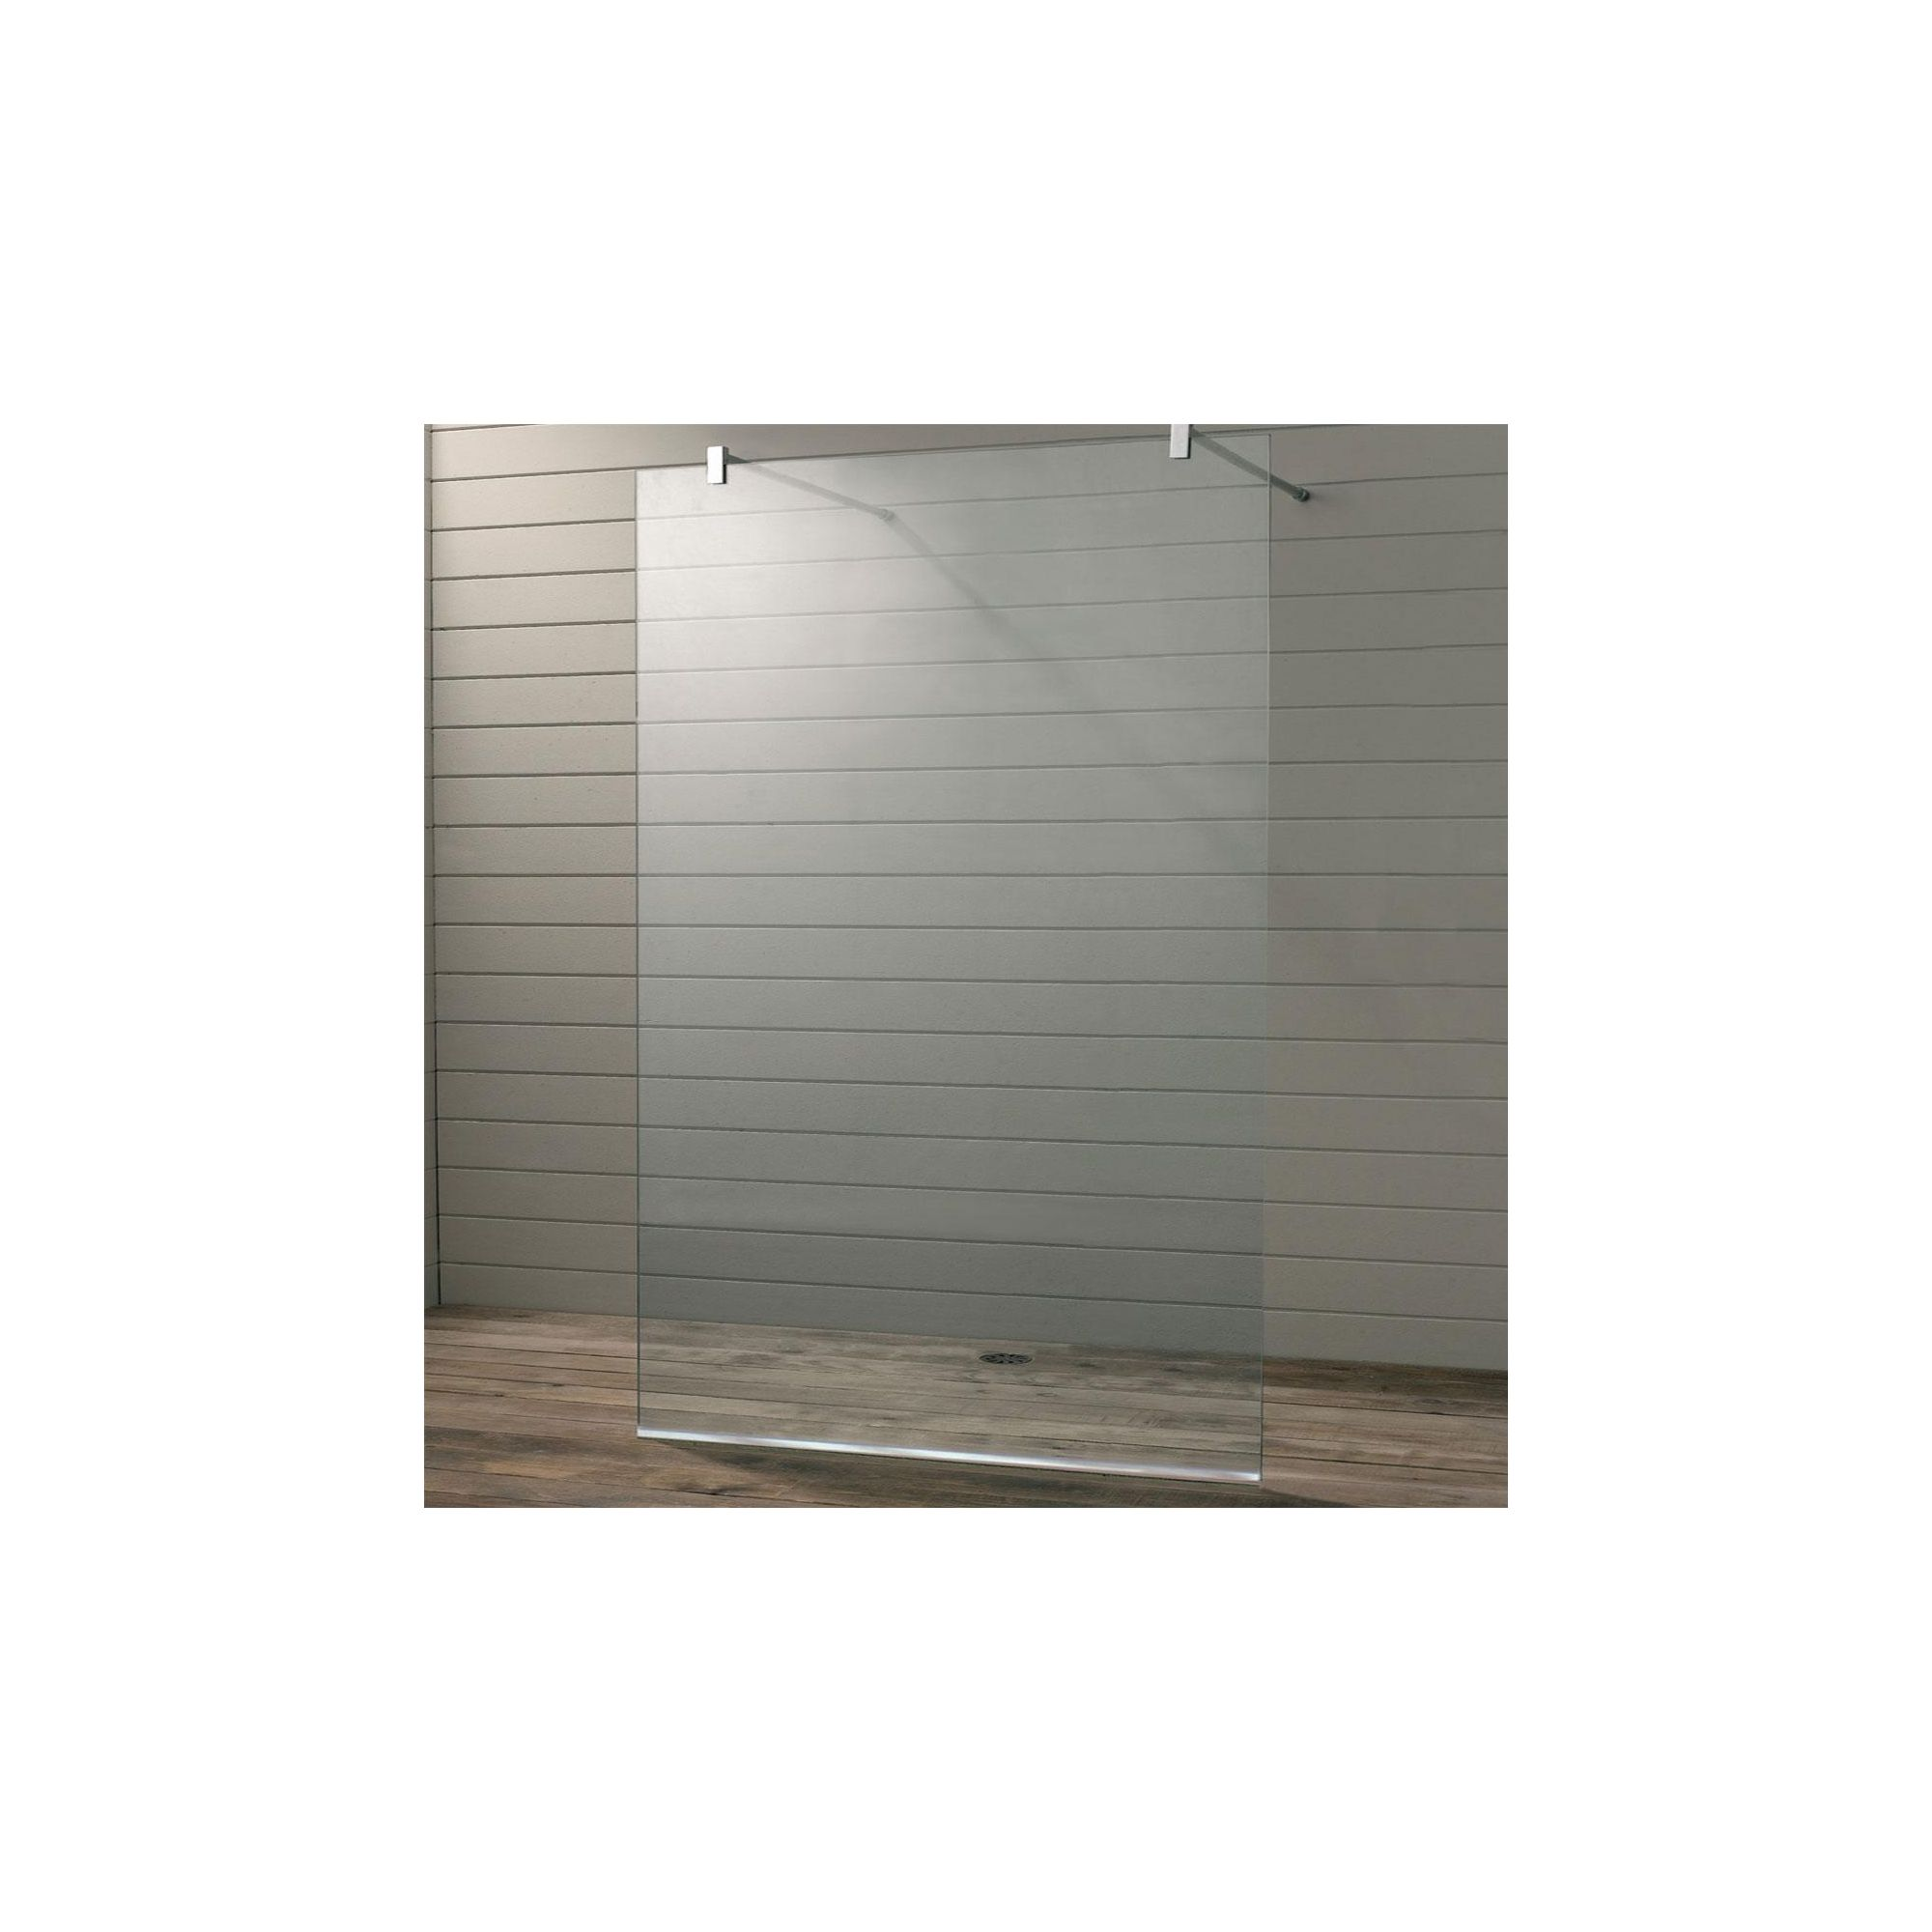 Duchy Premium Wet Room Glass Shower Panel, 900mm Wide, 10mm Glass at Tesco Direct